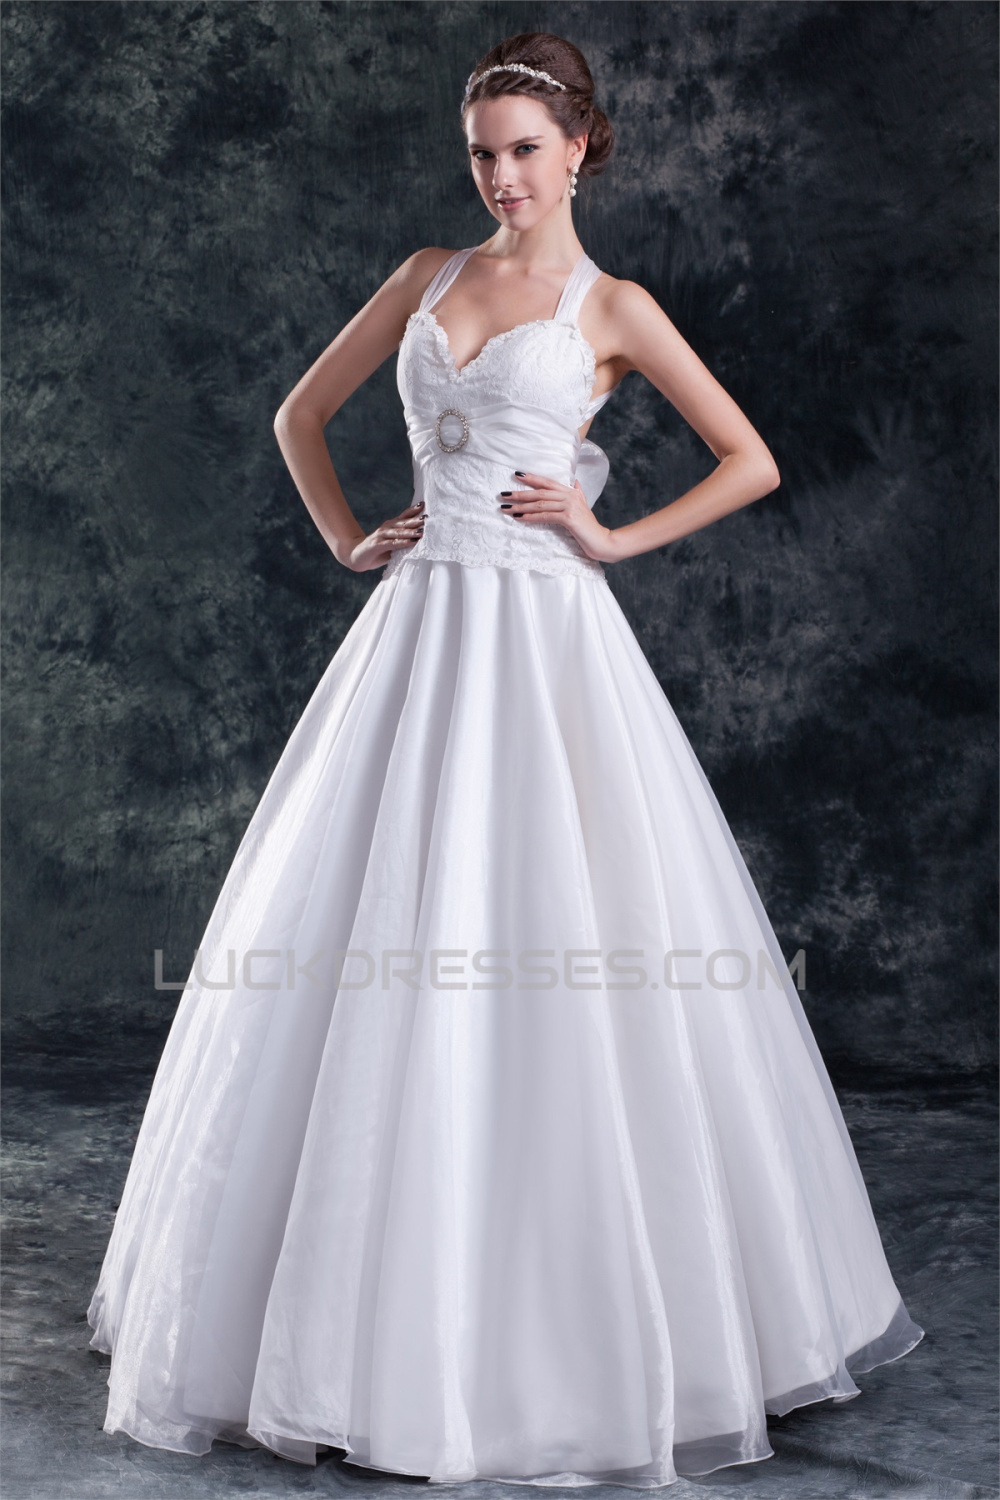 cb34a36199e A-Line Satin Lace Organza Halter Sleeveless Embellished Wedding Dresses  2031080